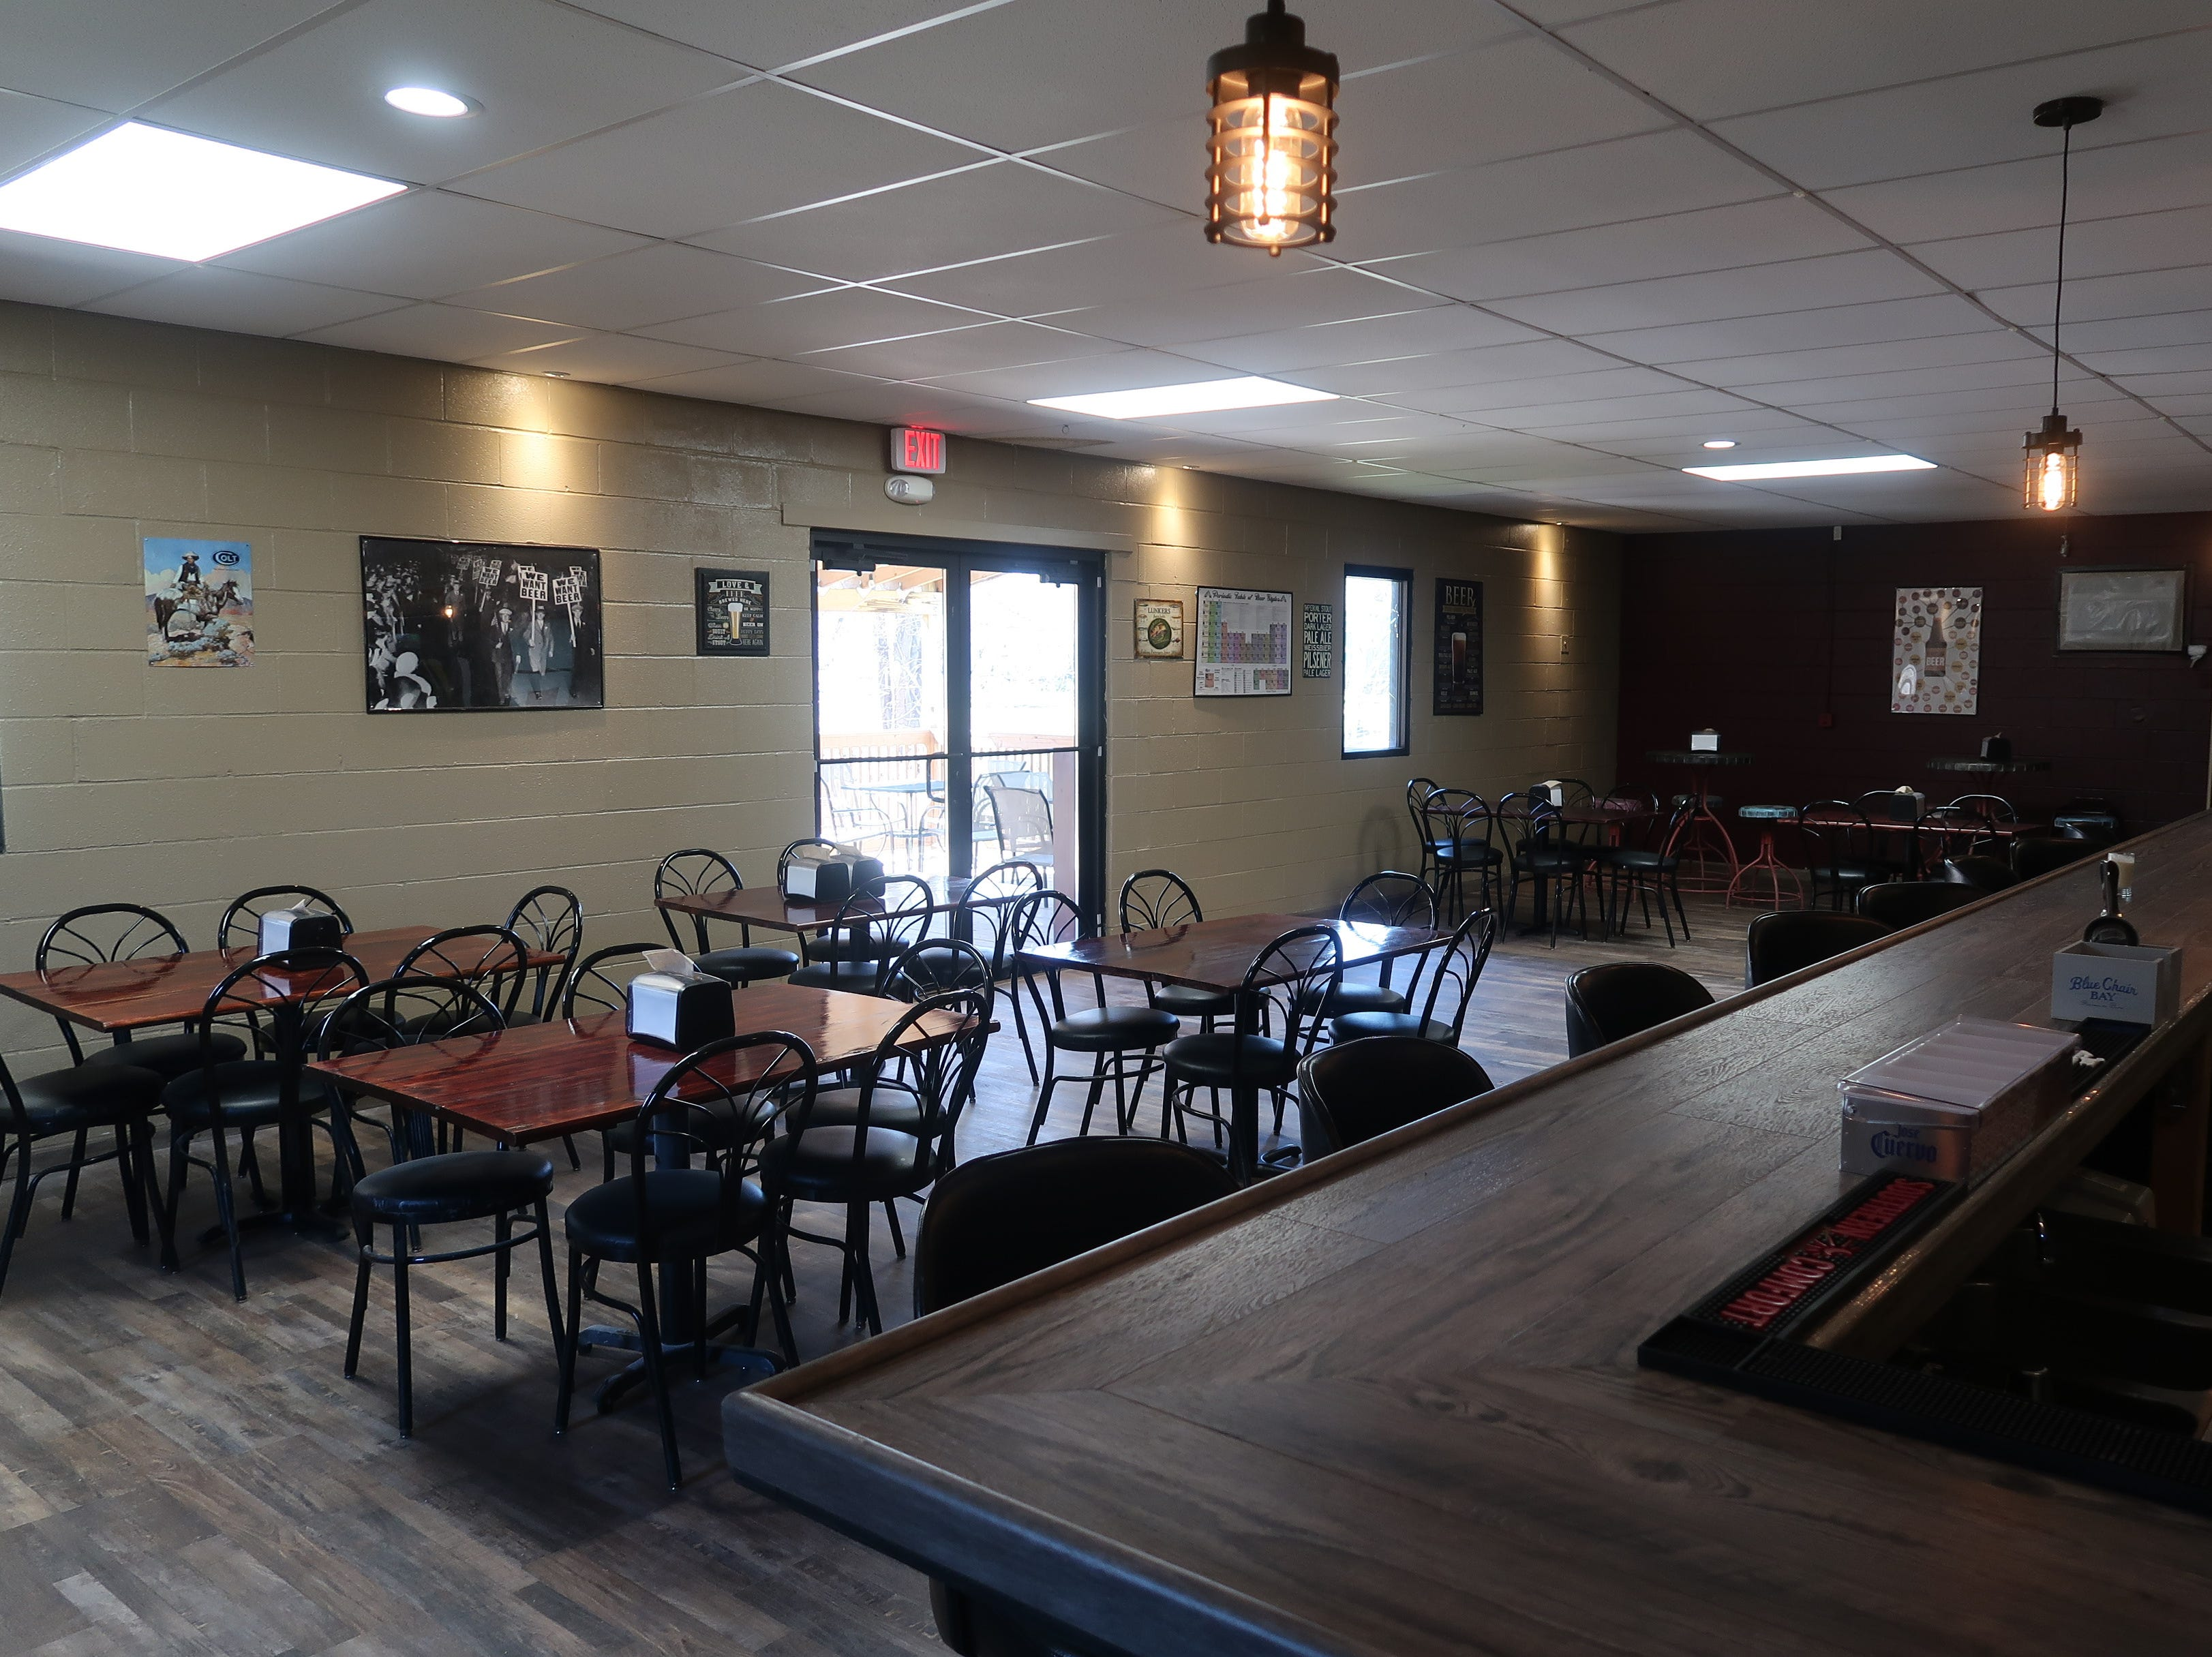 Another view of the tasting room at In The Mix Brewing and Creamery.